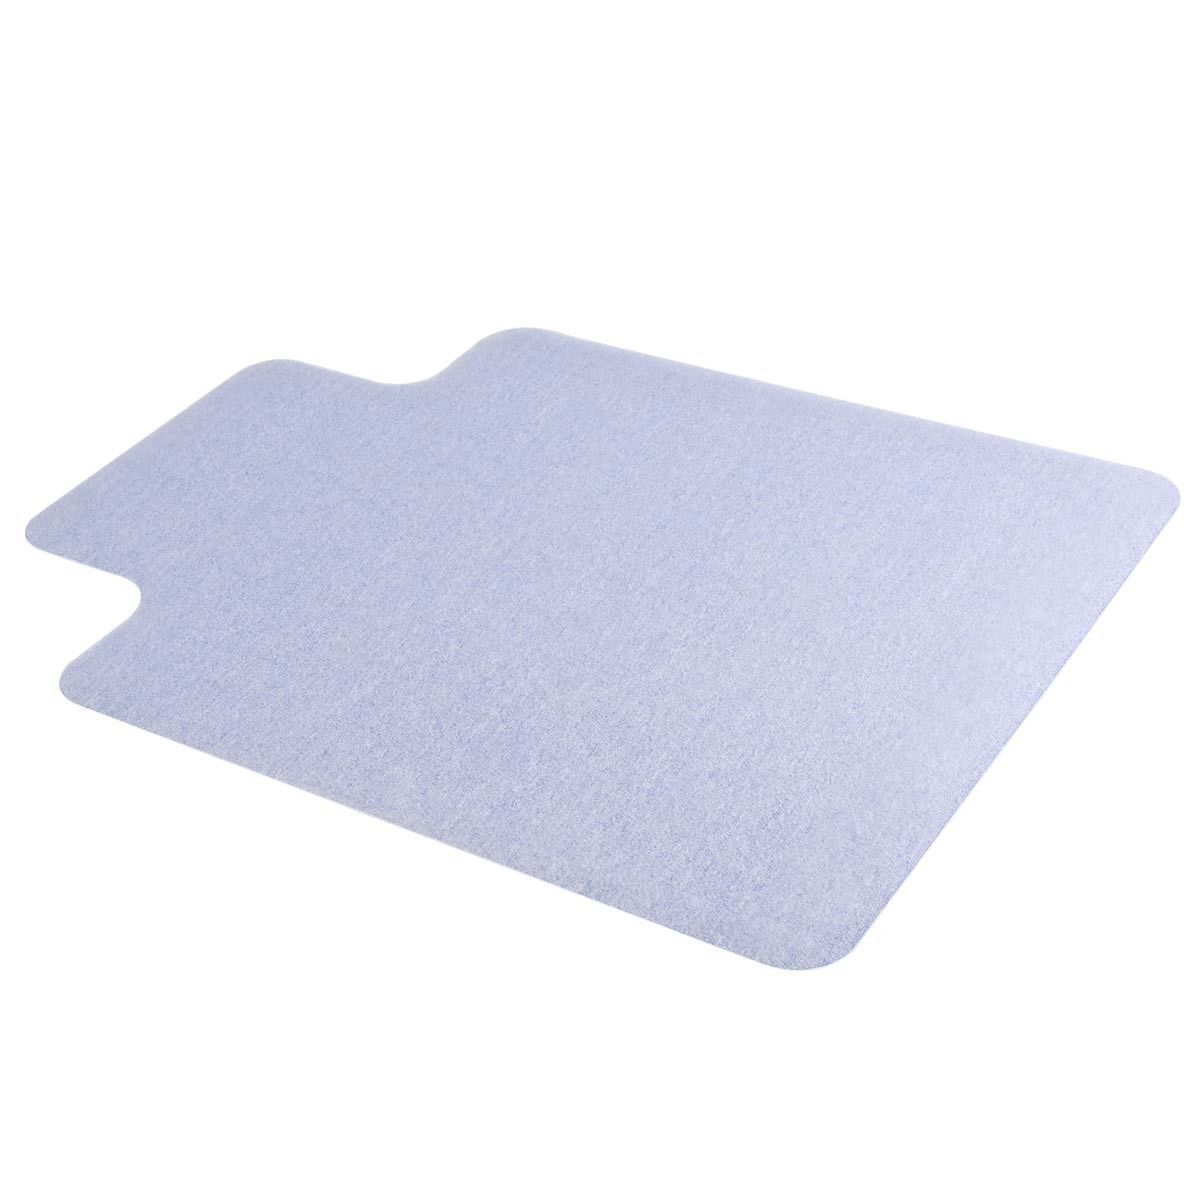 LHLL 900x1200mm Home Office Carpet Protector Chair Floor